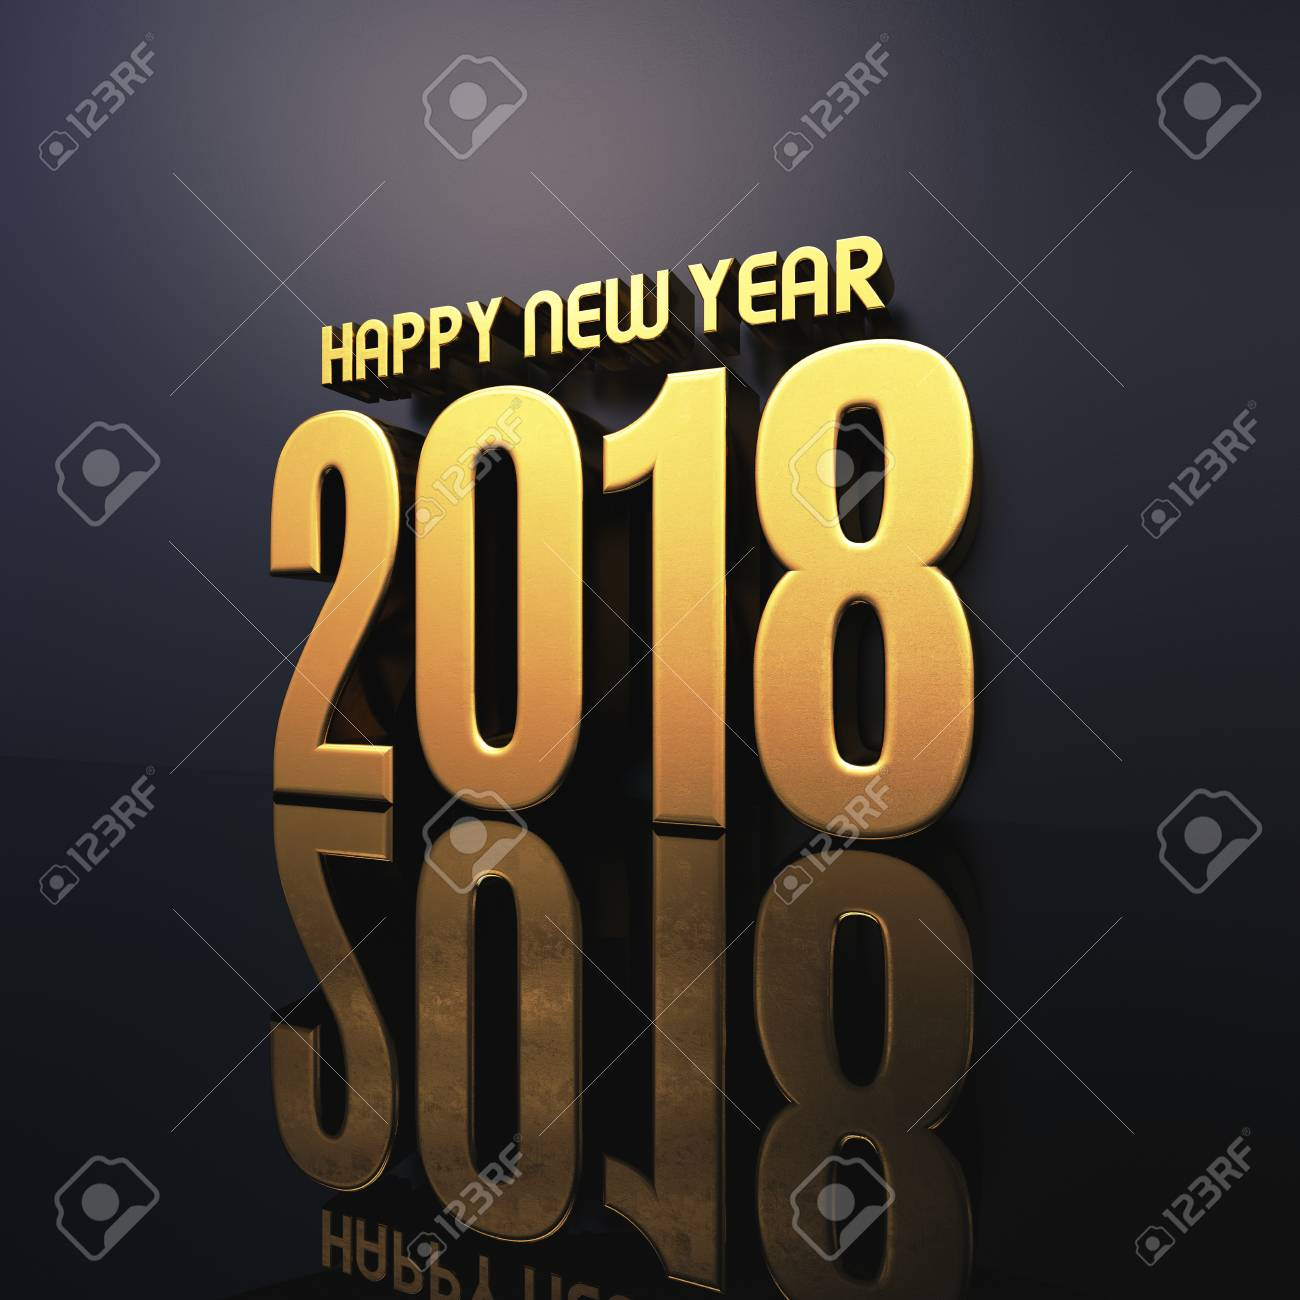 Gold Happy New Year 2018 Text Design 3d Illustration Golden Stock